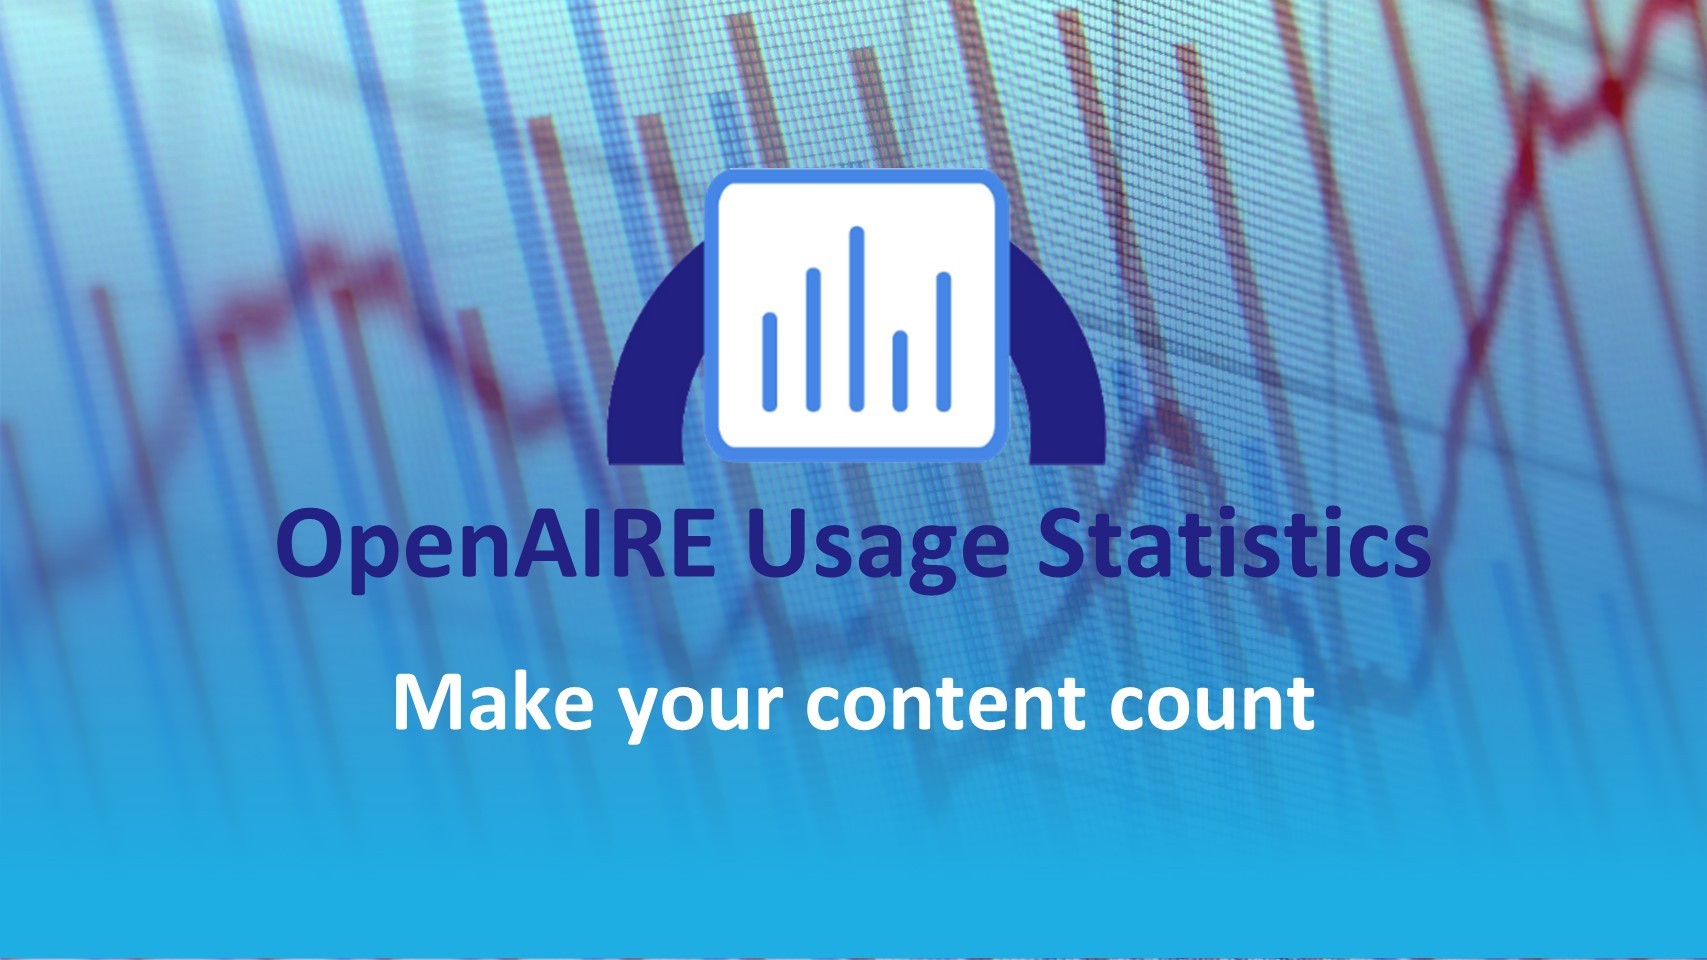 Usage statistics article cover